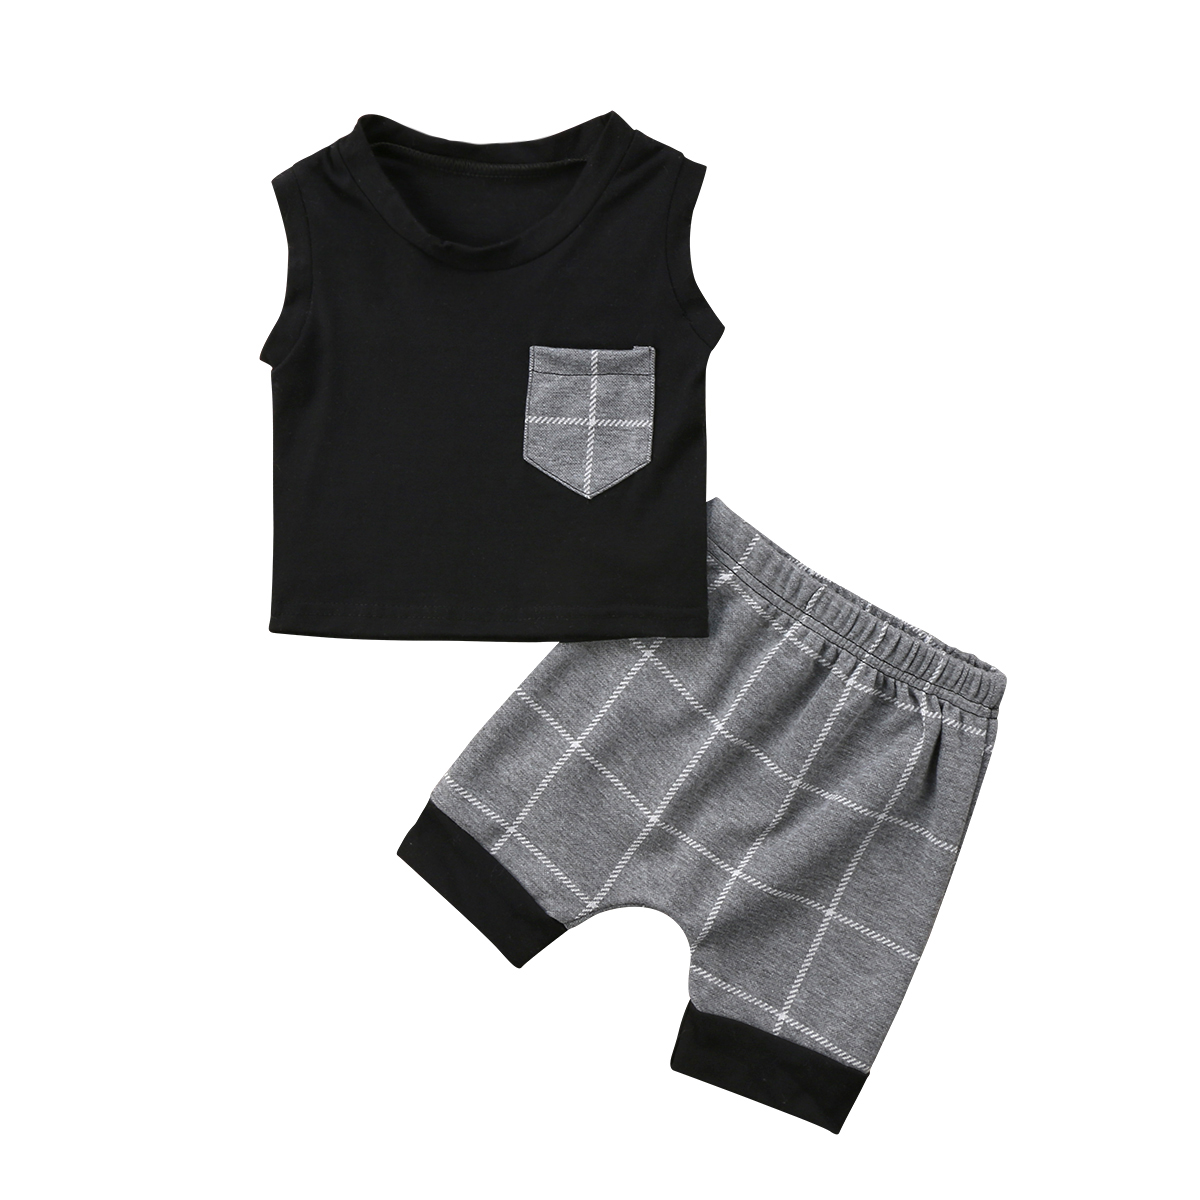 Pudcoco 2018 HOT SALE Toddler Kids Baby Boy 2PCS Sleeveless T-shirt+Plaid Pants Fashion Outfits Set 0-24M